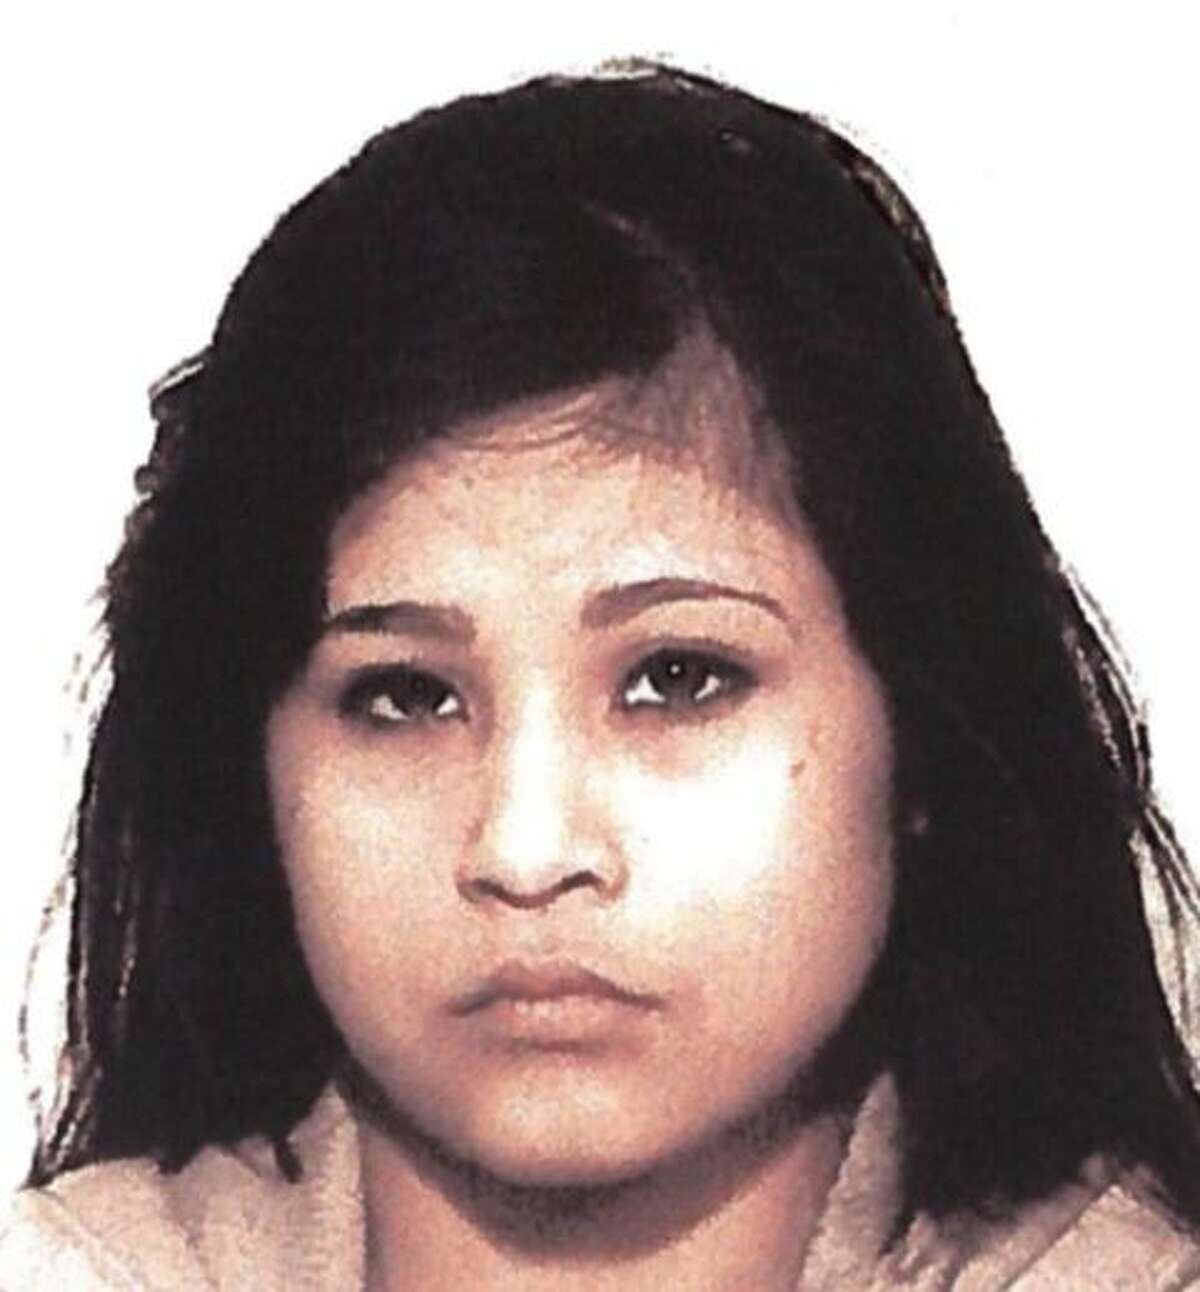 Gabby Reyna, 16, was last seen on April 18 in the 100 block of Prelude Place.